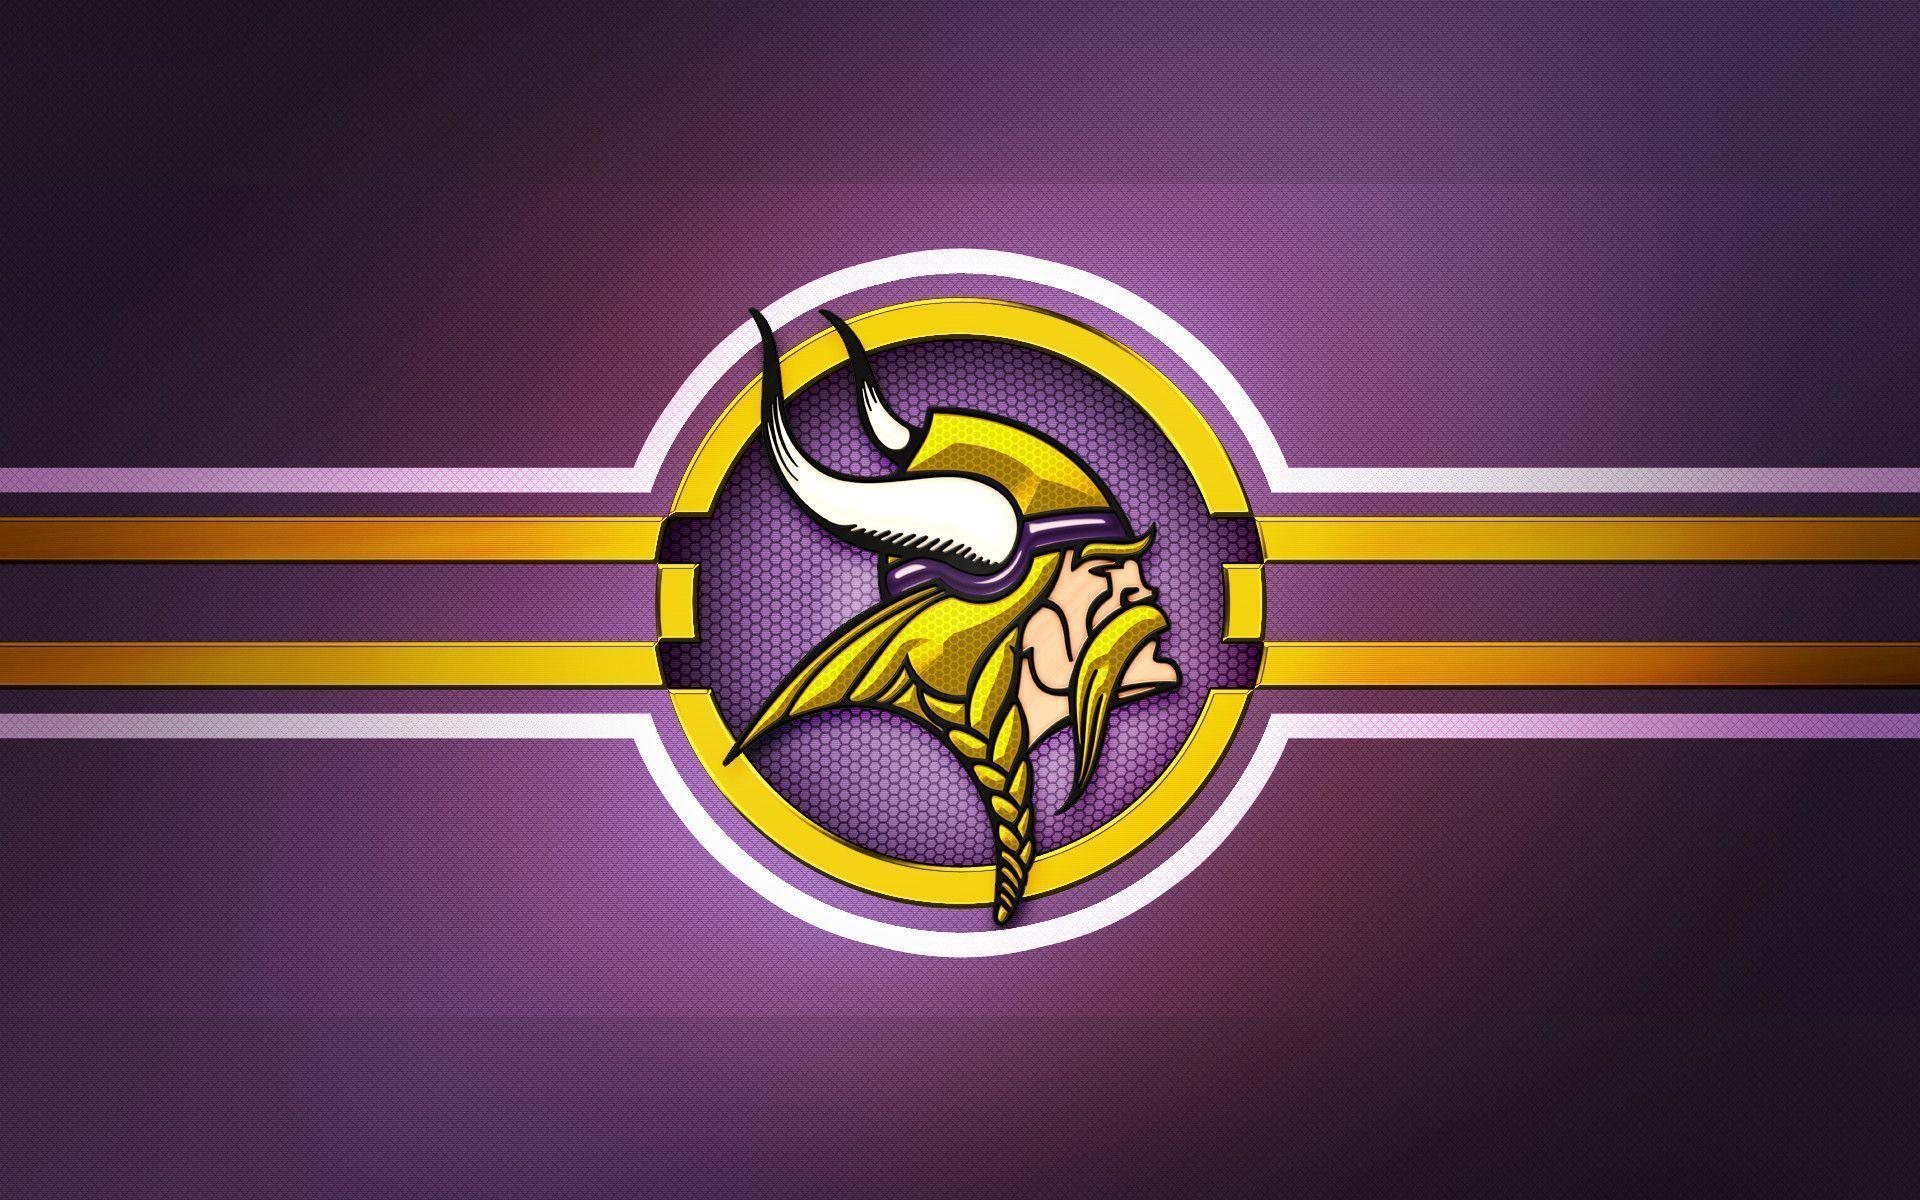 Minnesota Vikings Wallpapers Hd 25662 Images | wallgraf.